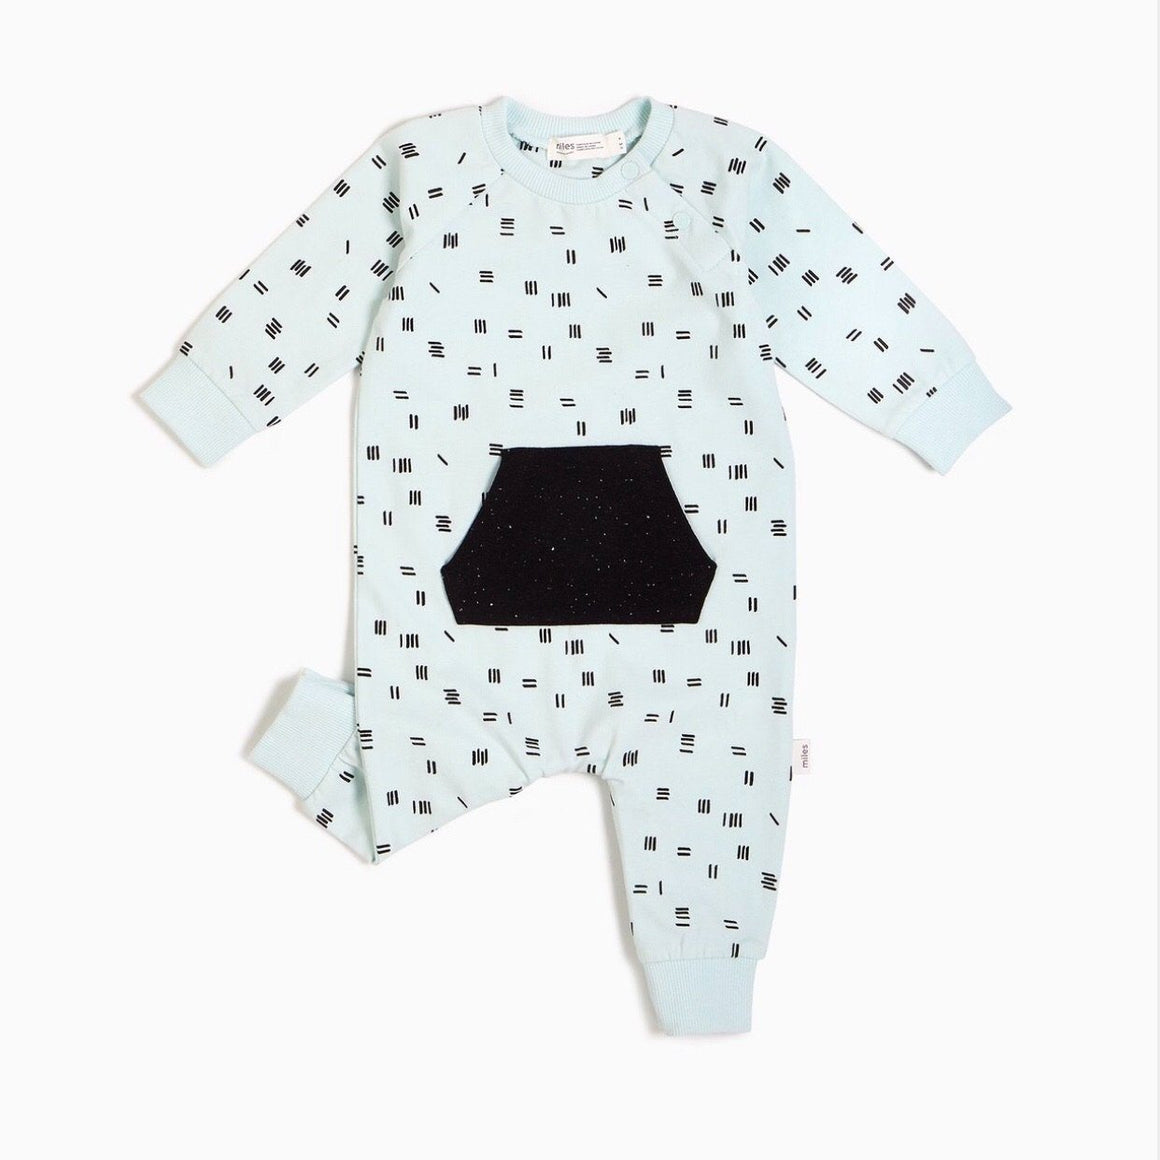 20SMW51316 - Miles Basic Unisex Baby Chalk Lines Playsuit Jumpsuits / Rompers Miles Baby